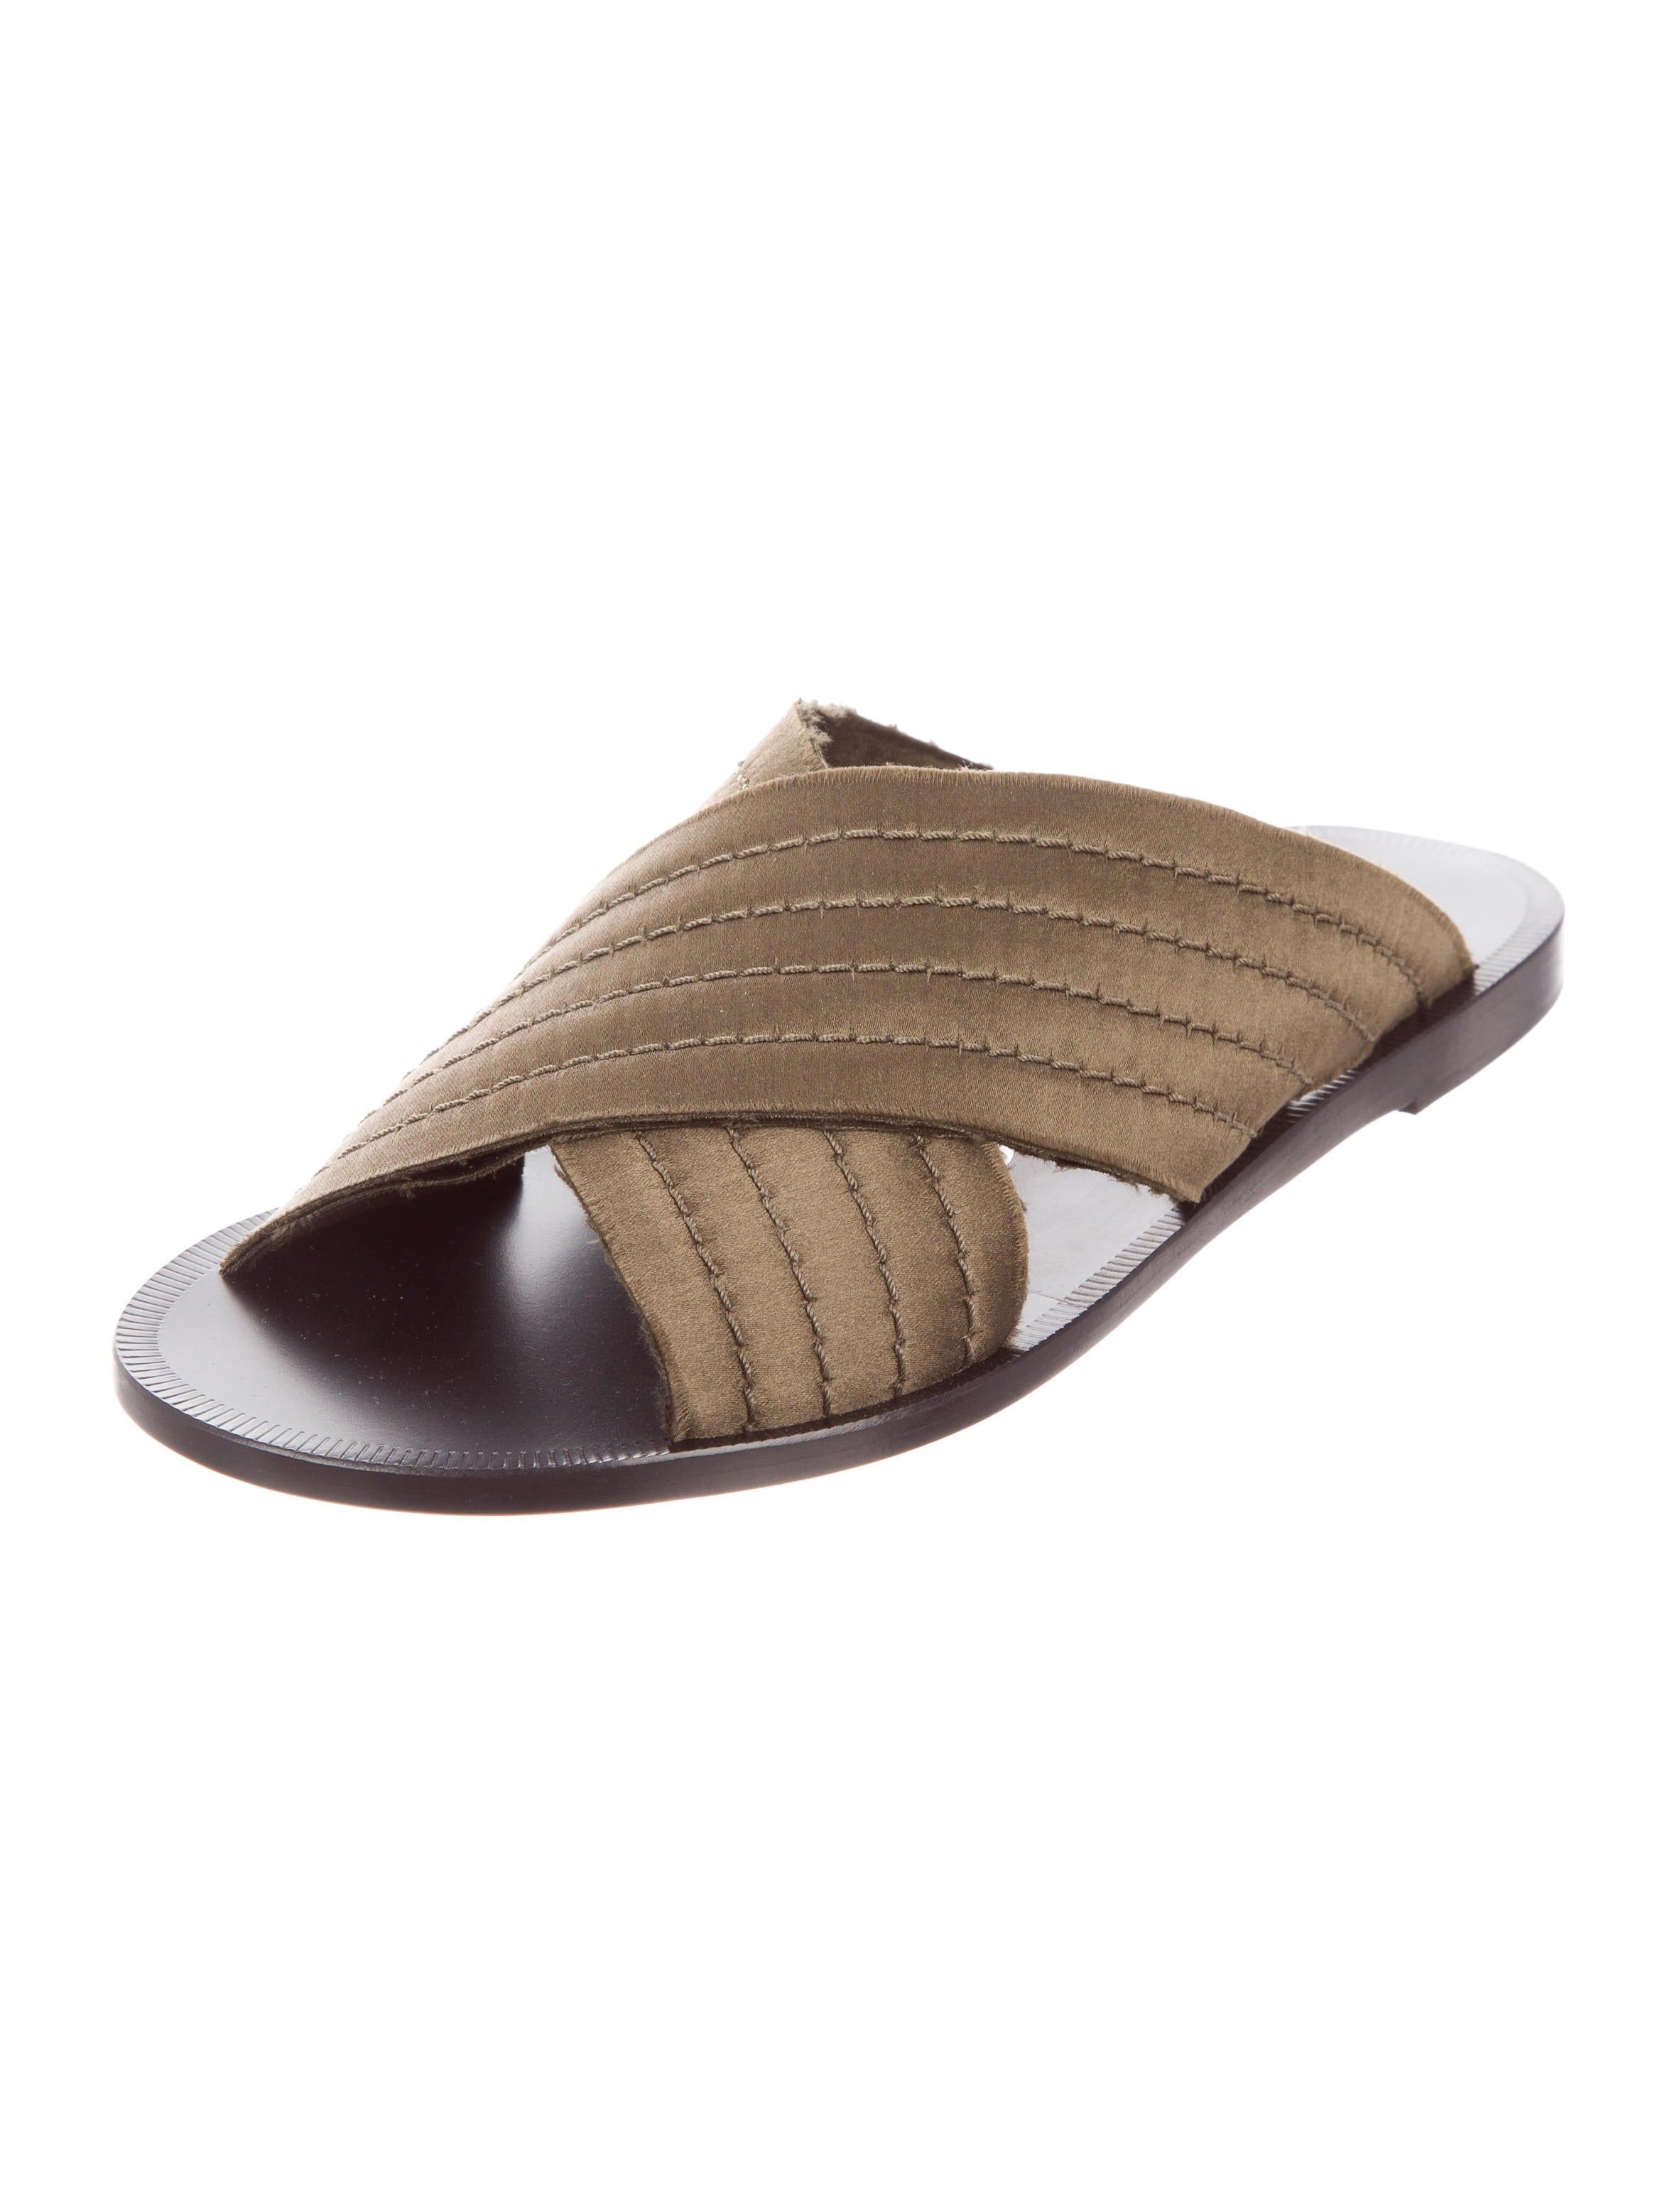 Pedro Garcia Zissi Slide Sandals w/ Tags cheap sale pick a best clearance 2015 RxsIf3TJ